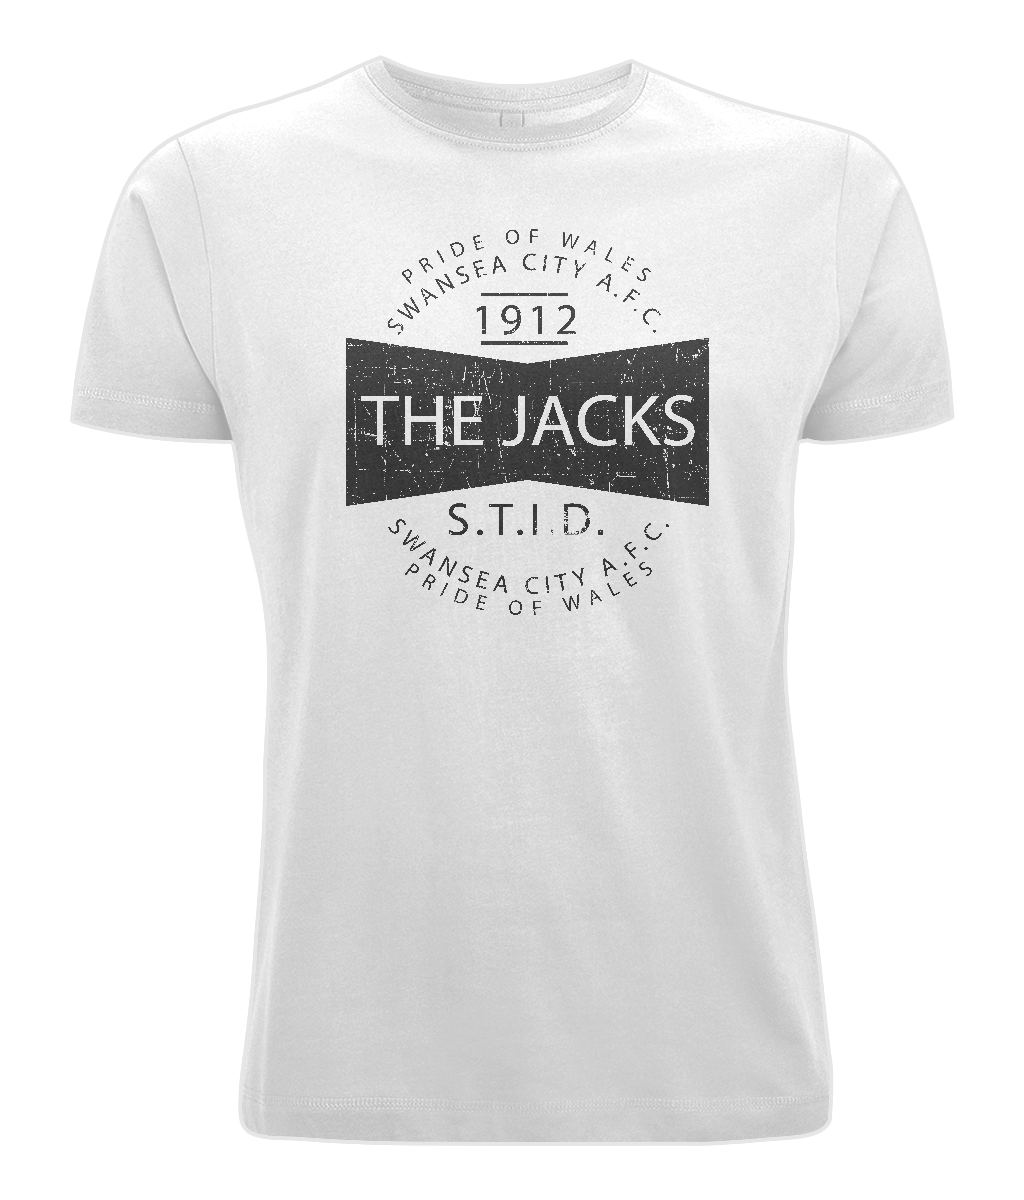 THE JACKS - Swansea City FC Shirt